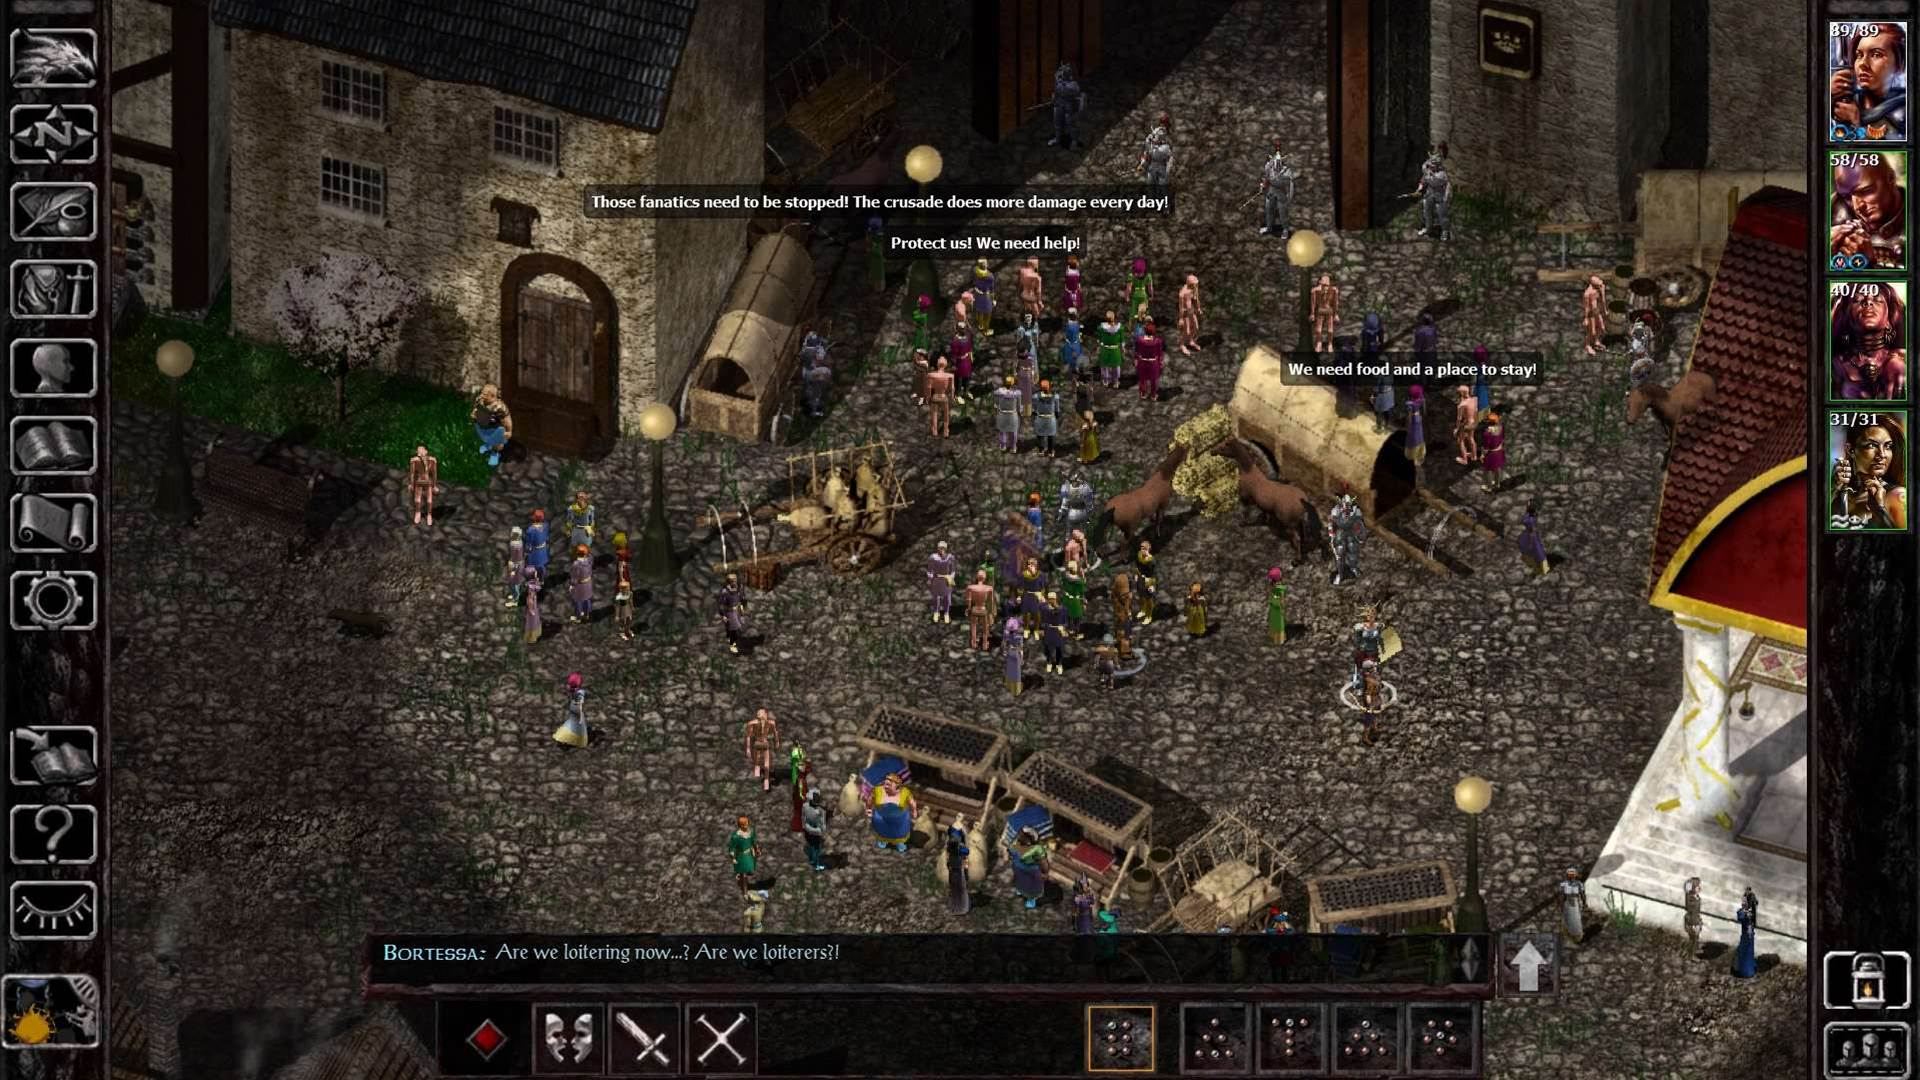 Baldur's Gate: Enhanced Edition gets new Siege of Dragonspear expansion